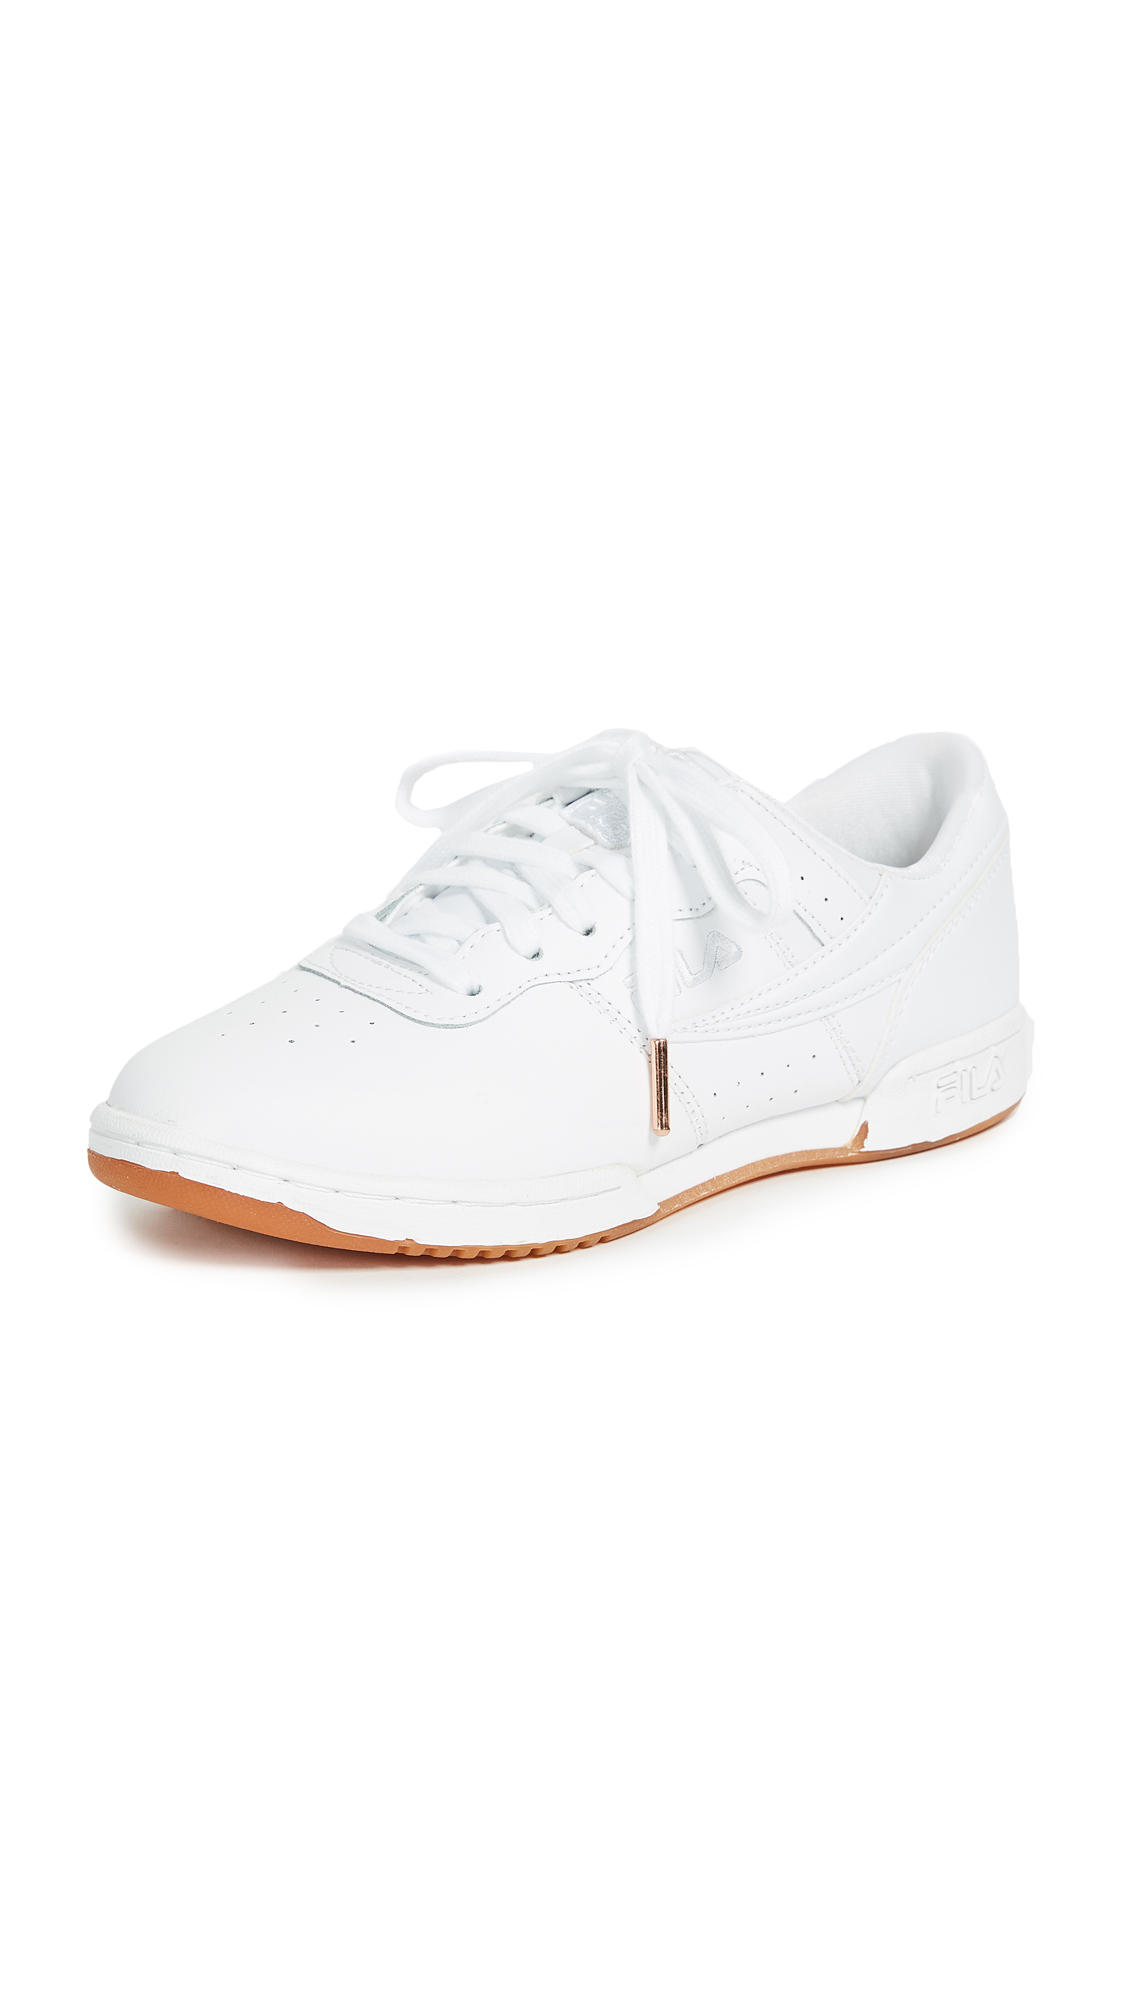 Fila Original Fitness Zipper Sneakers - White/White/Gum